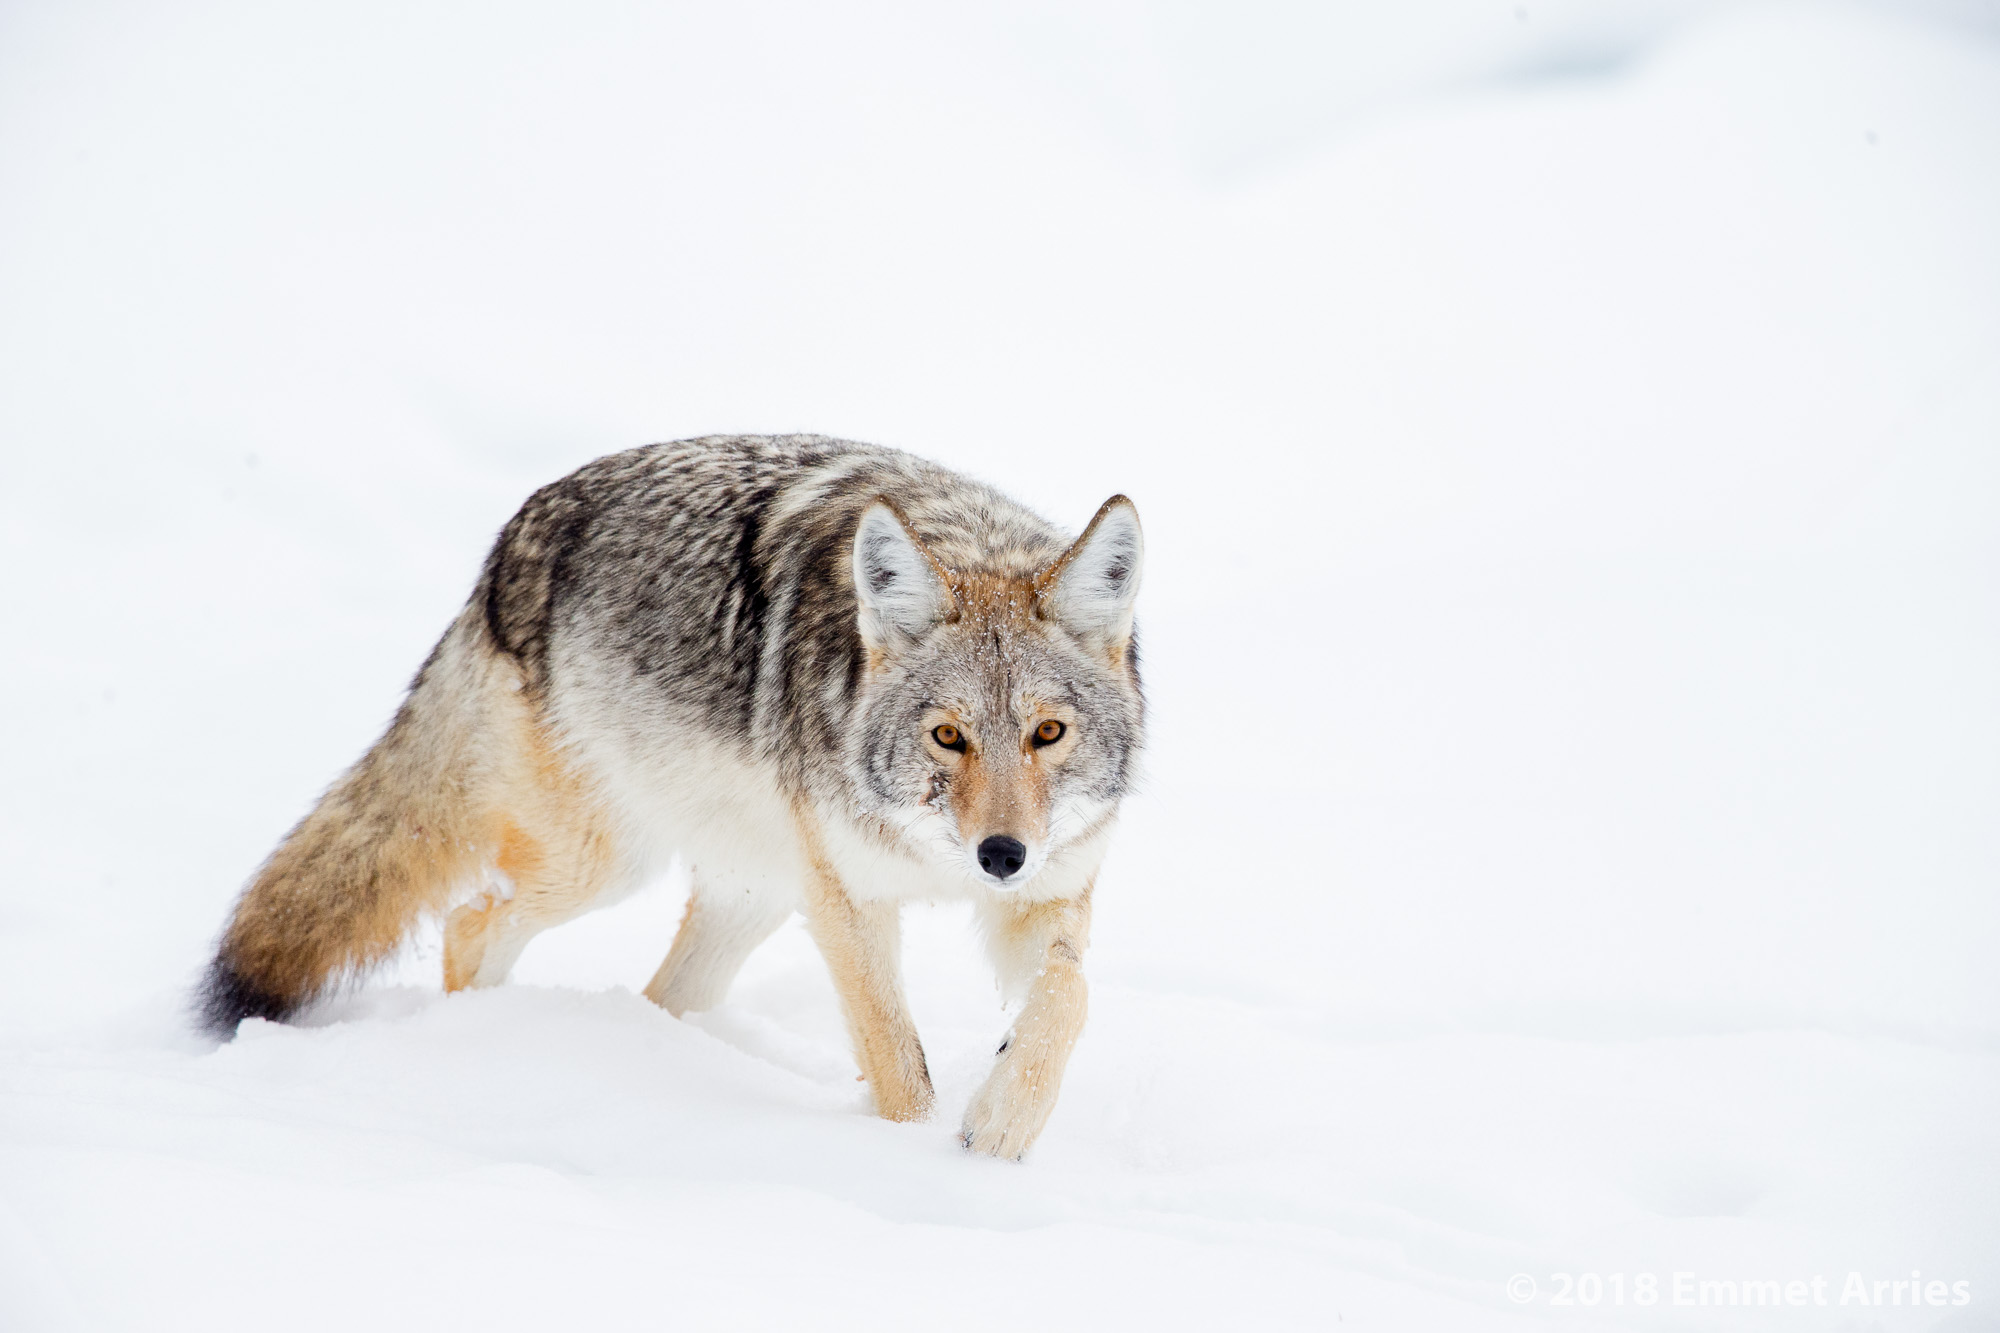 This coyote glances up from its wander in the interior of Yellowstone. Due to its full looking belly, I believe that it just finished gorging itself on a nearby carcass.